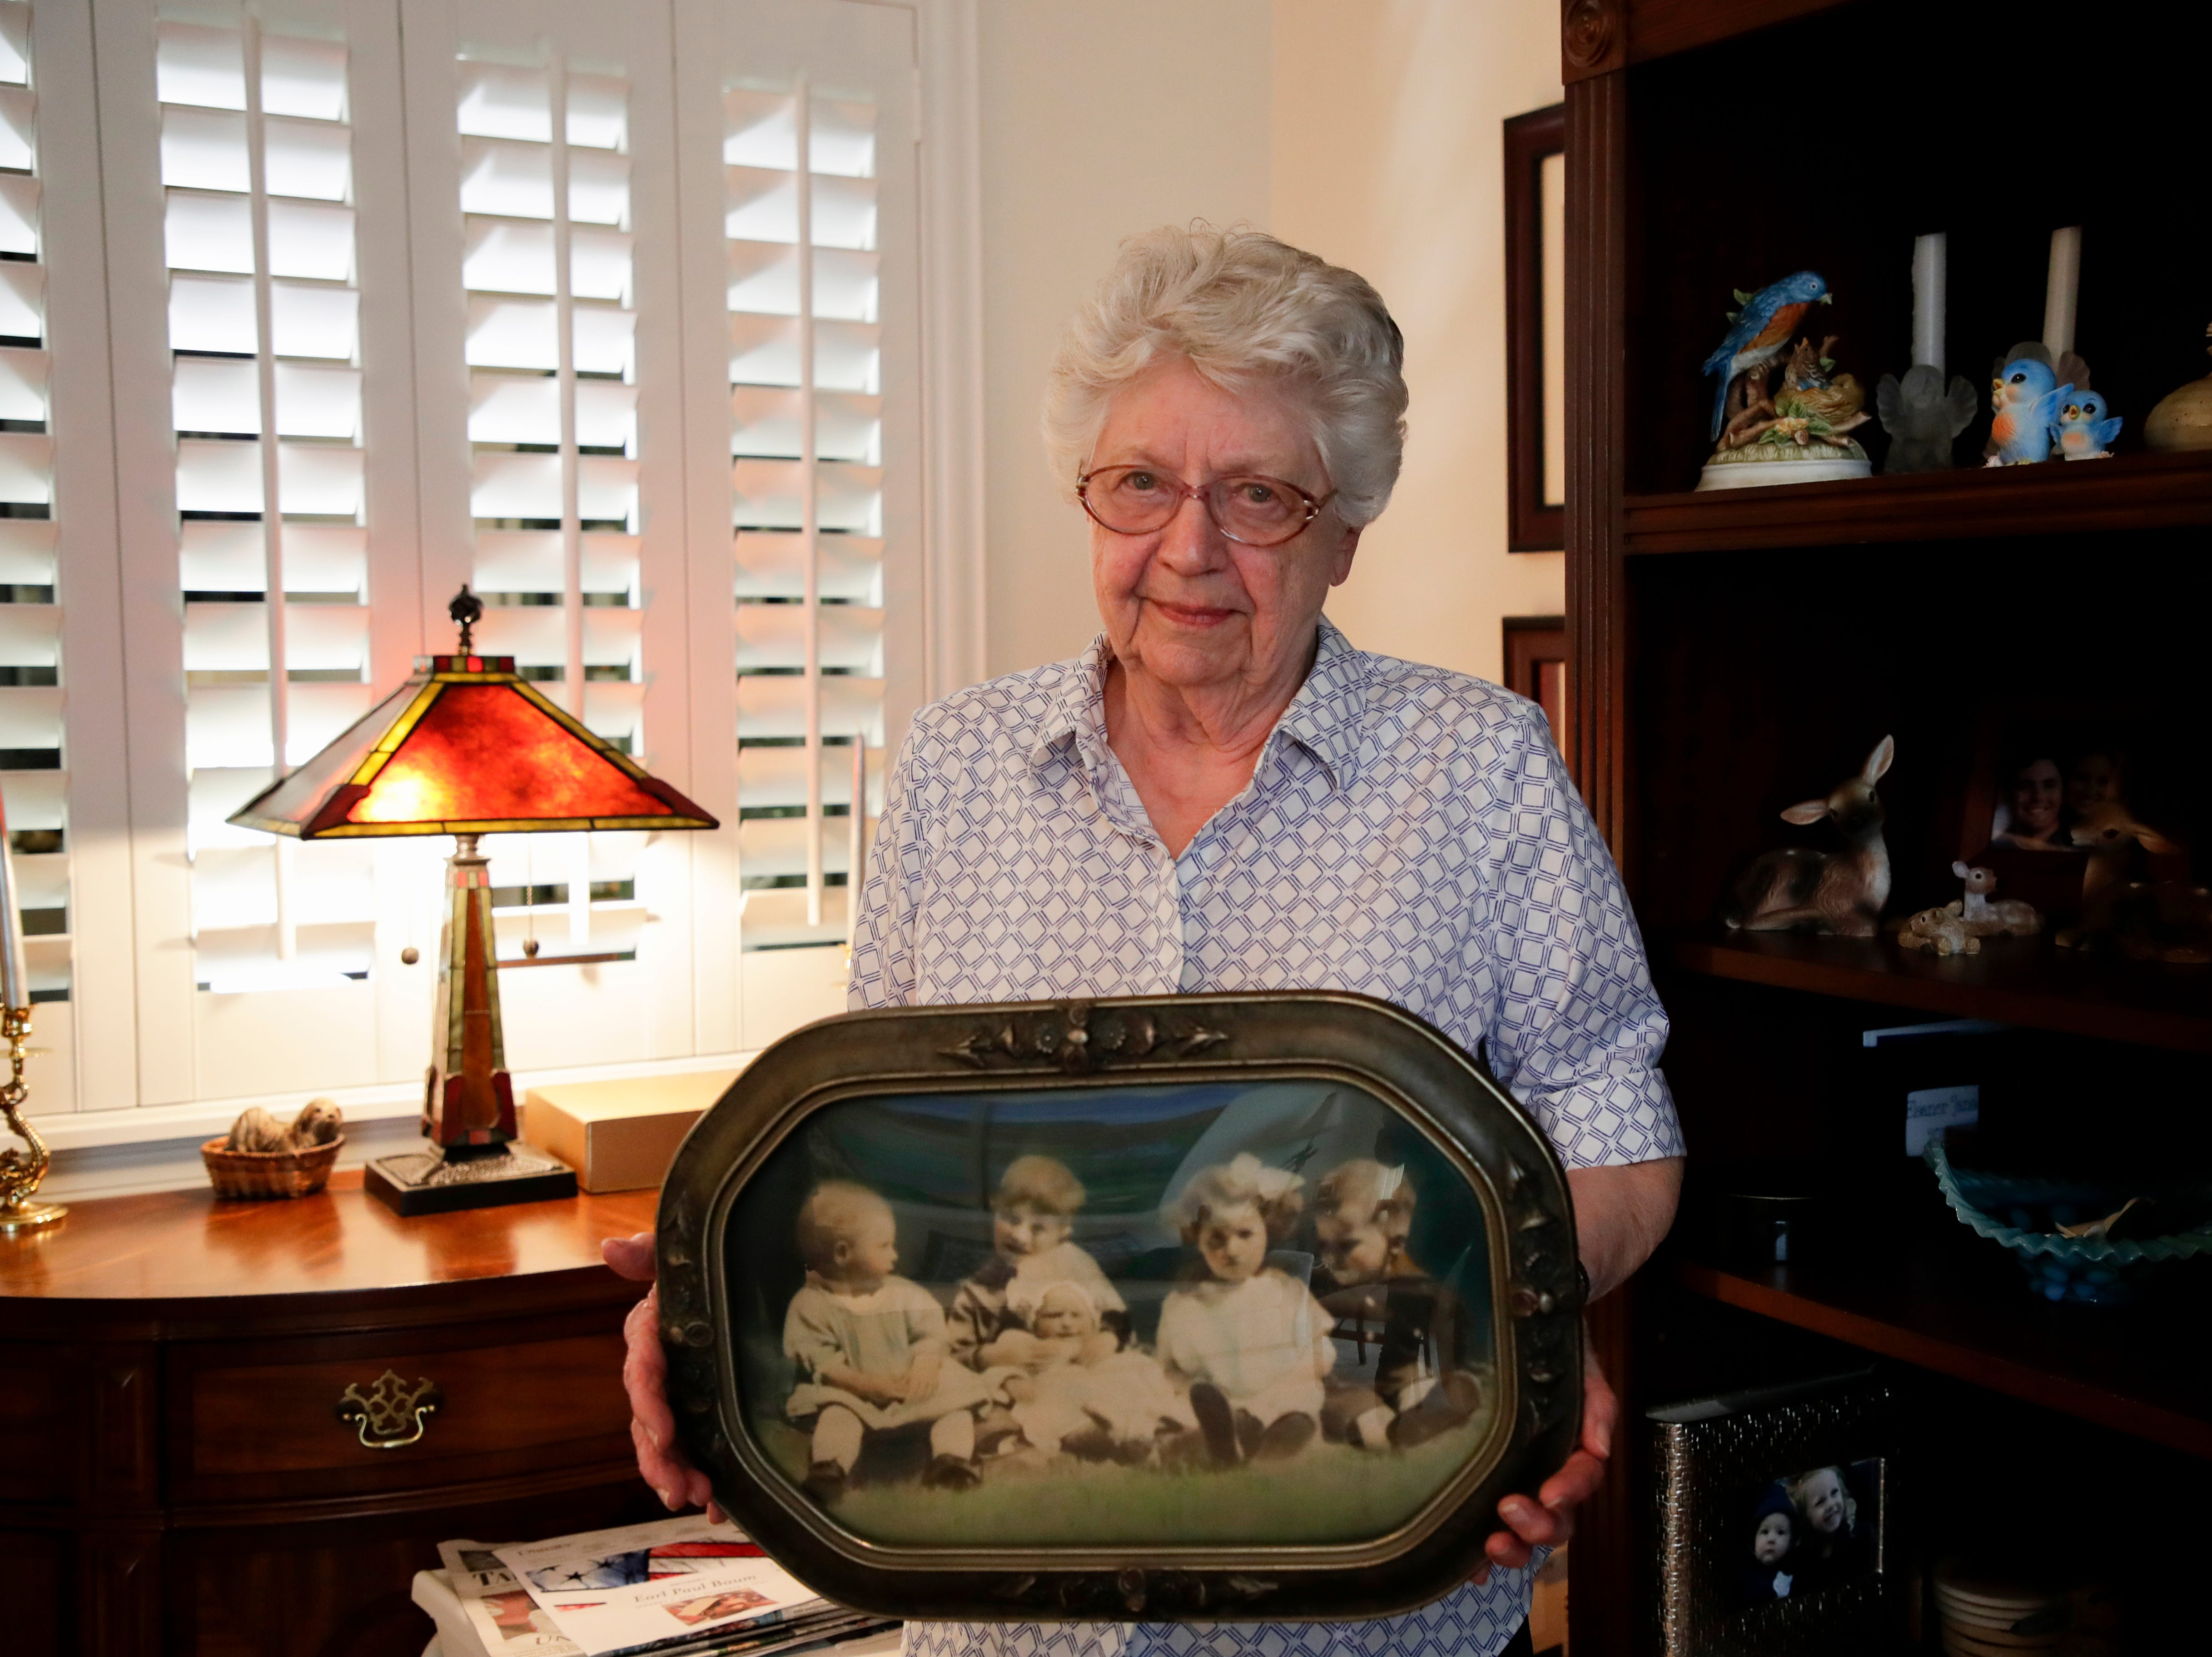 Emily Golz holds a photo from her childhood showing her and her siblings. In the photo she, the youngest, is being held in the lap of her oldest brother Earl Baum, who died at Pearl Harbor in 1941. Baum's remains were identified last year through DNA. He will be buried March 8, 2019 at Tallahassee National Cemetery.